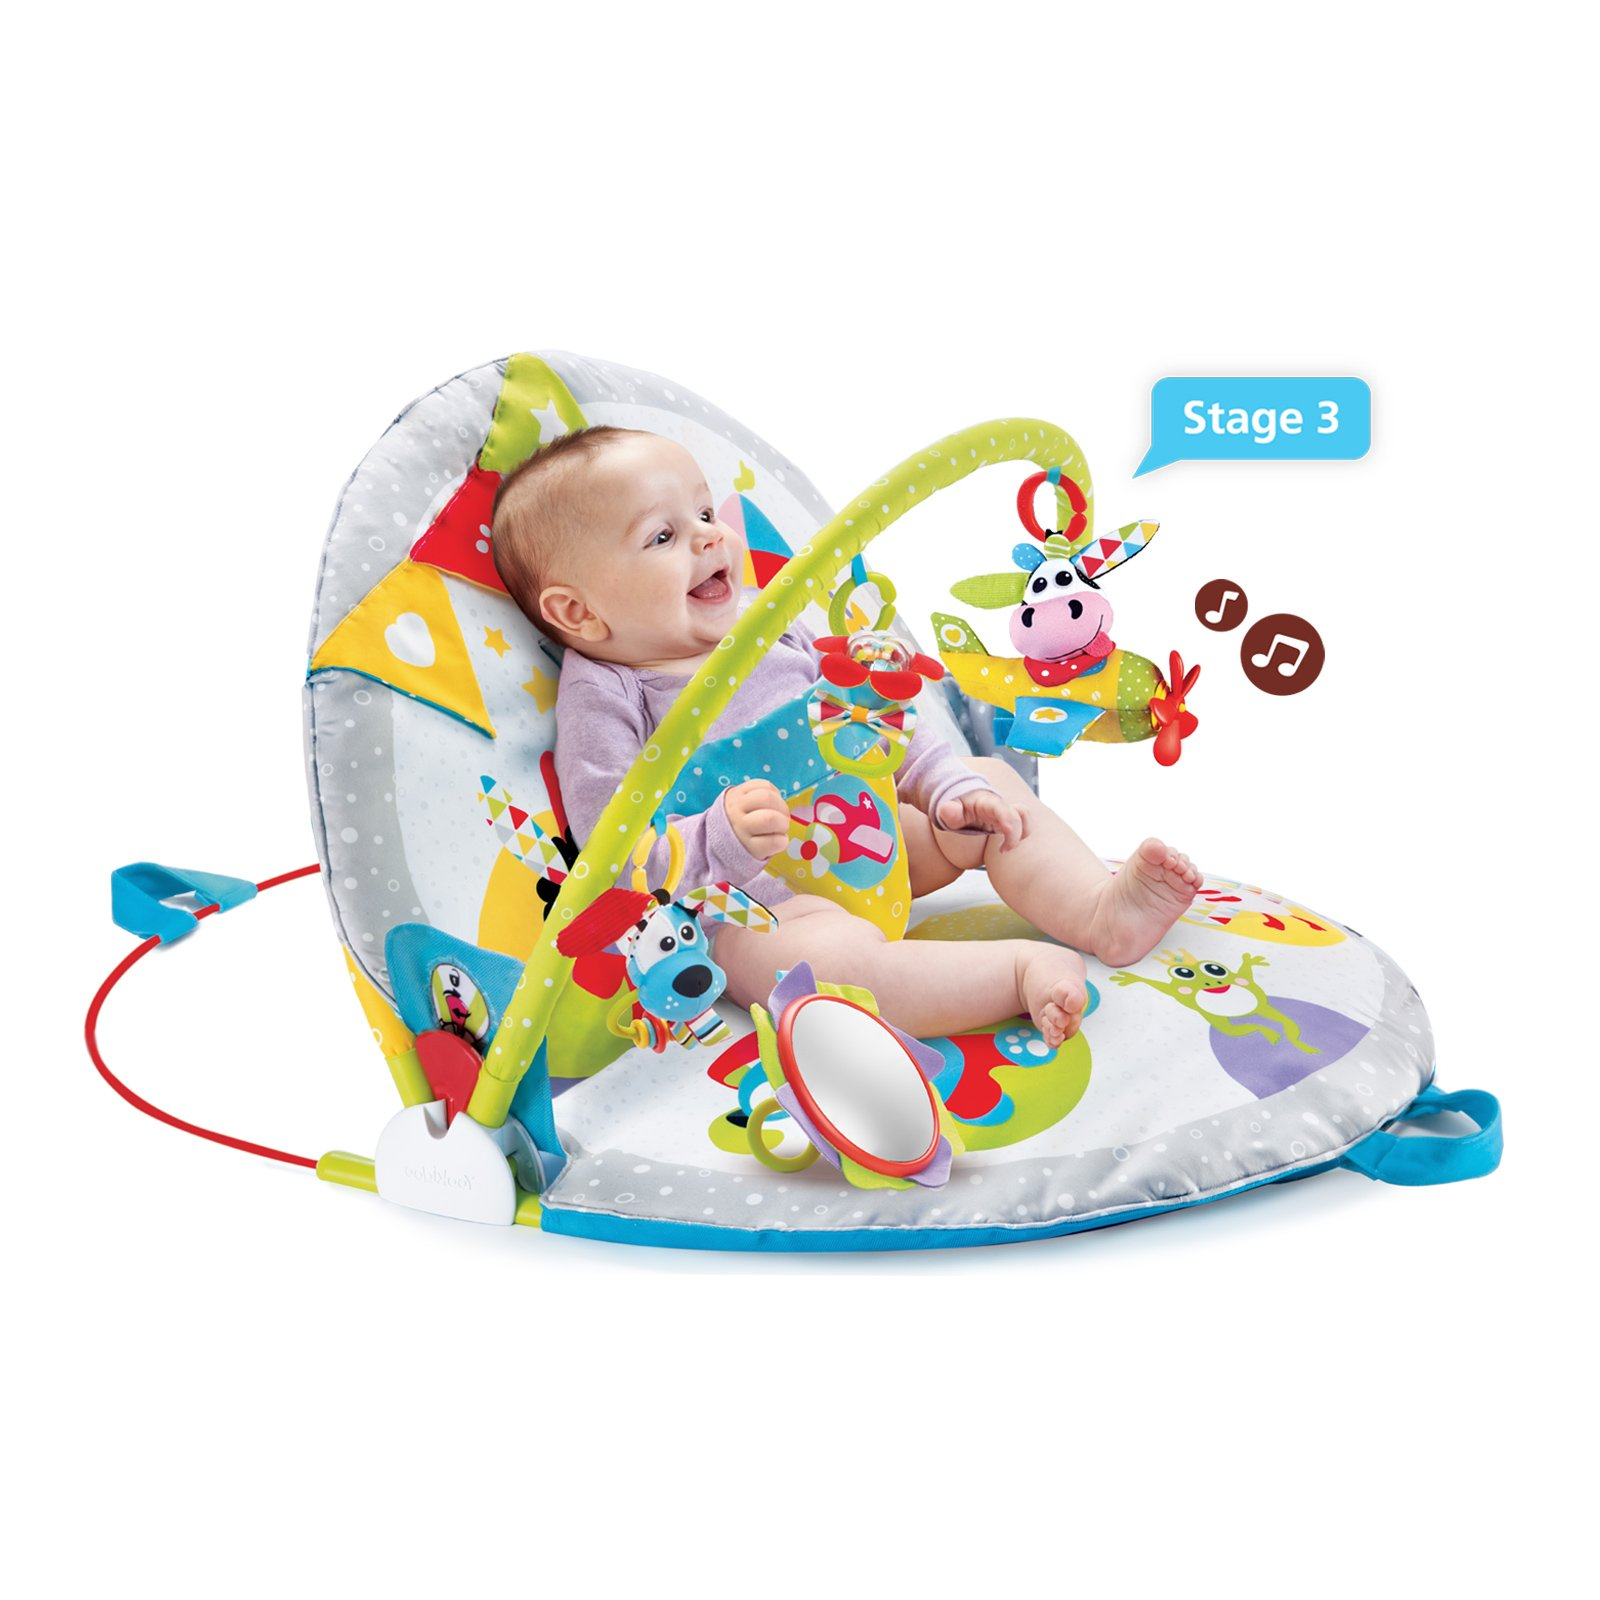 Yookidoo Gymotion Lay to Sit-Up Play Mat Infant Activity Toy for Baby 0 - 12 Month by Yookidoo (Image #5)